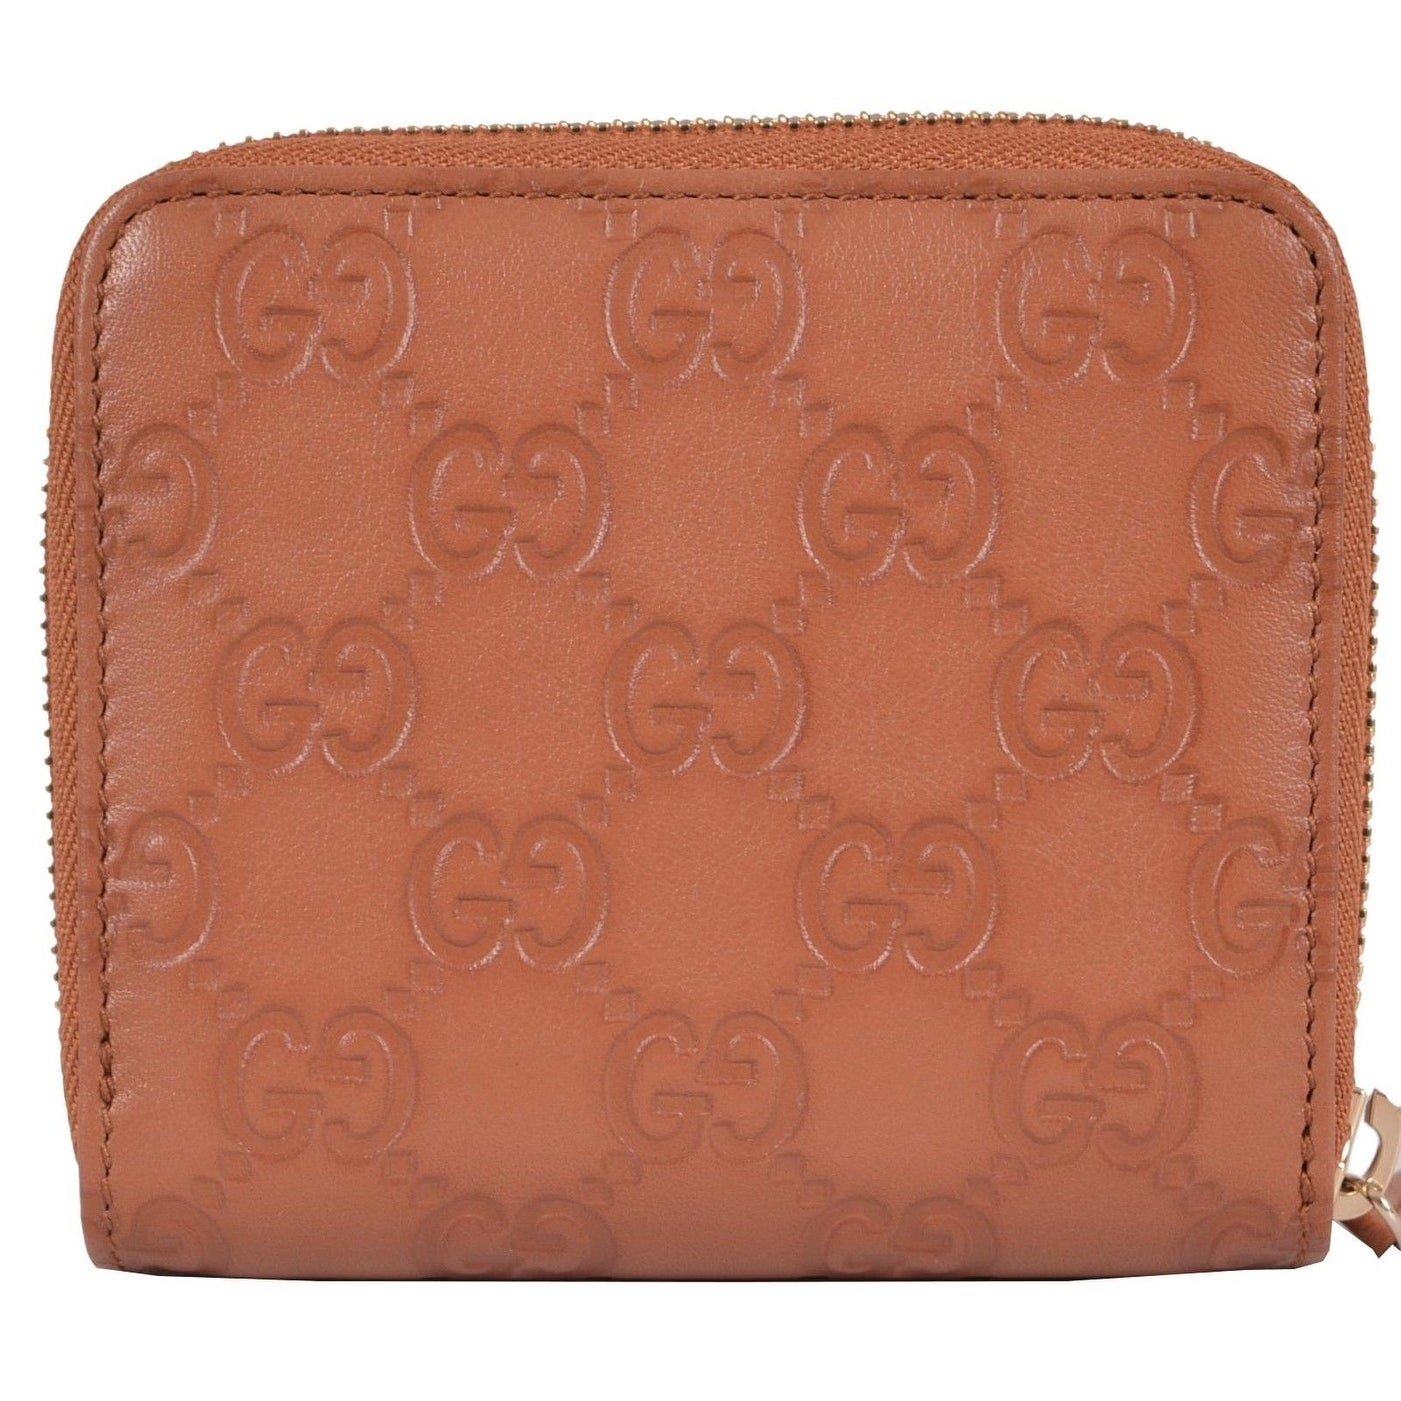 "Gucci Women's 346056 TAN Leather GG Guccissima French Zip Wallet W/Coin - 4"" x 4"" - Thumbnail 0"